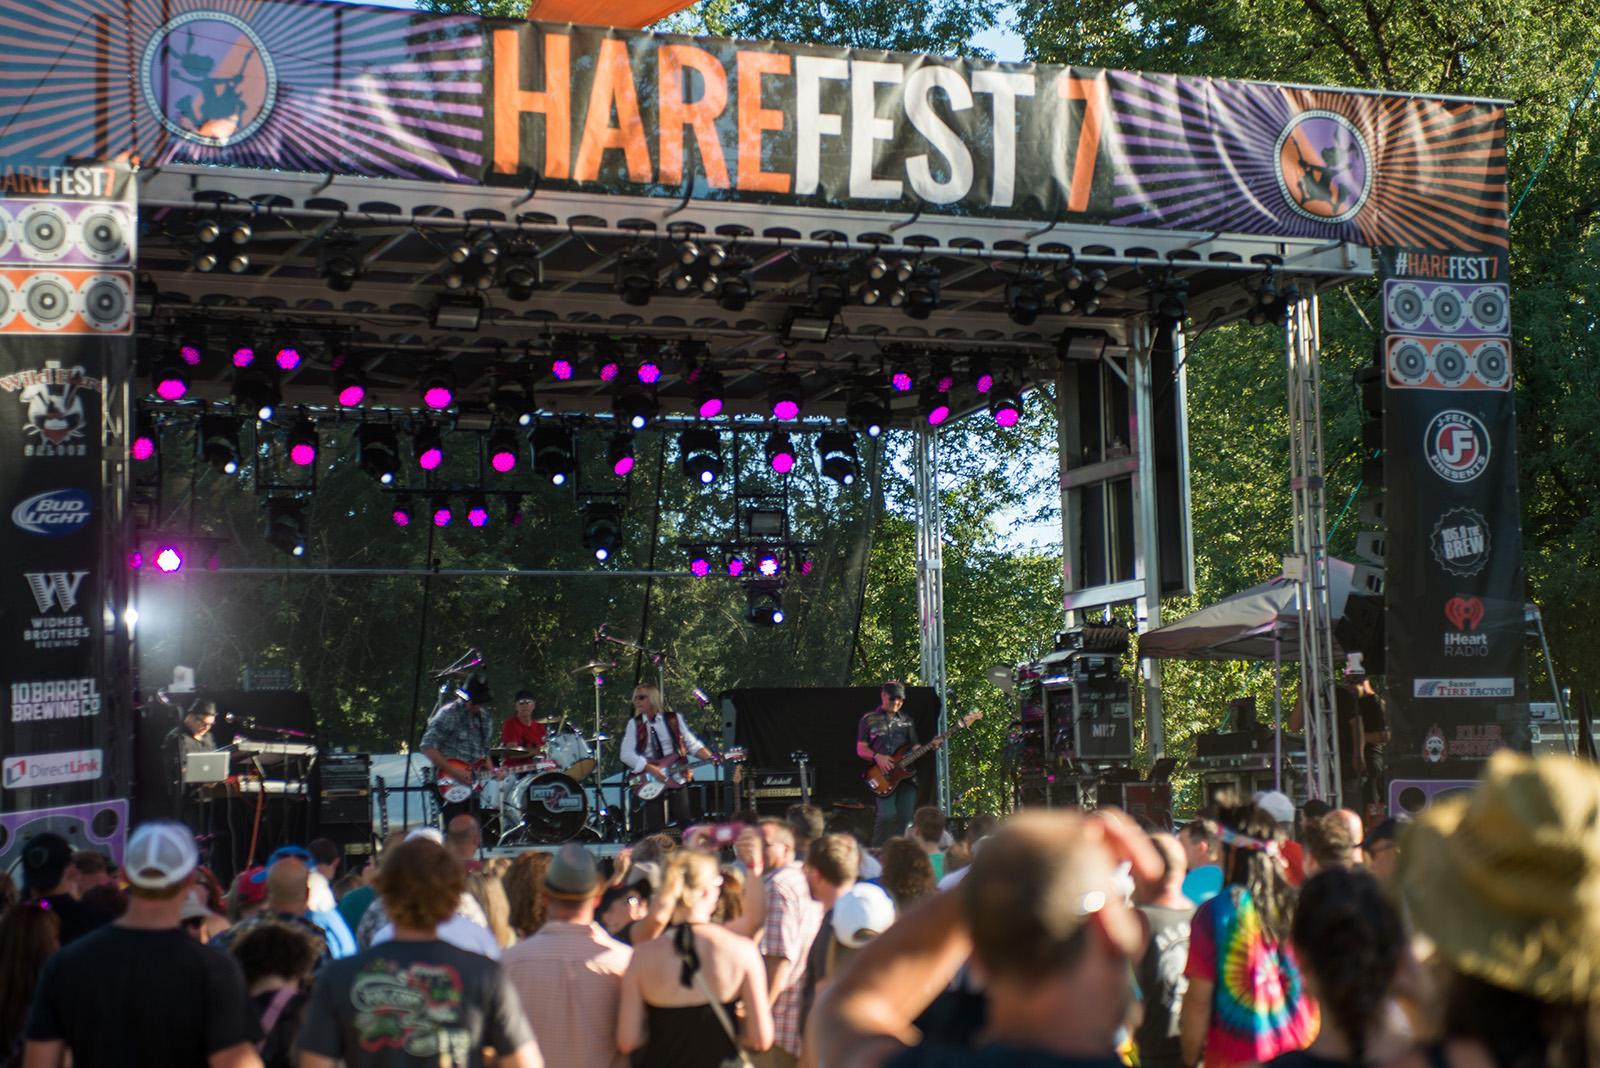 Harefest, the Pacific Northwest's largest tribute band festival, is a two-day event near Canby that lets fans relive their favorite musical acts with incredible cover artists. The festival is now in its 7th year and boasts several big name tribute acts. (KATU News photo taken July14, 2017 by Tristan Fortsch)